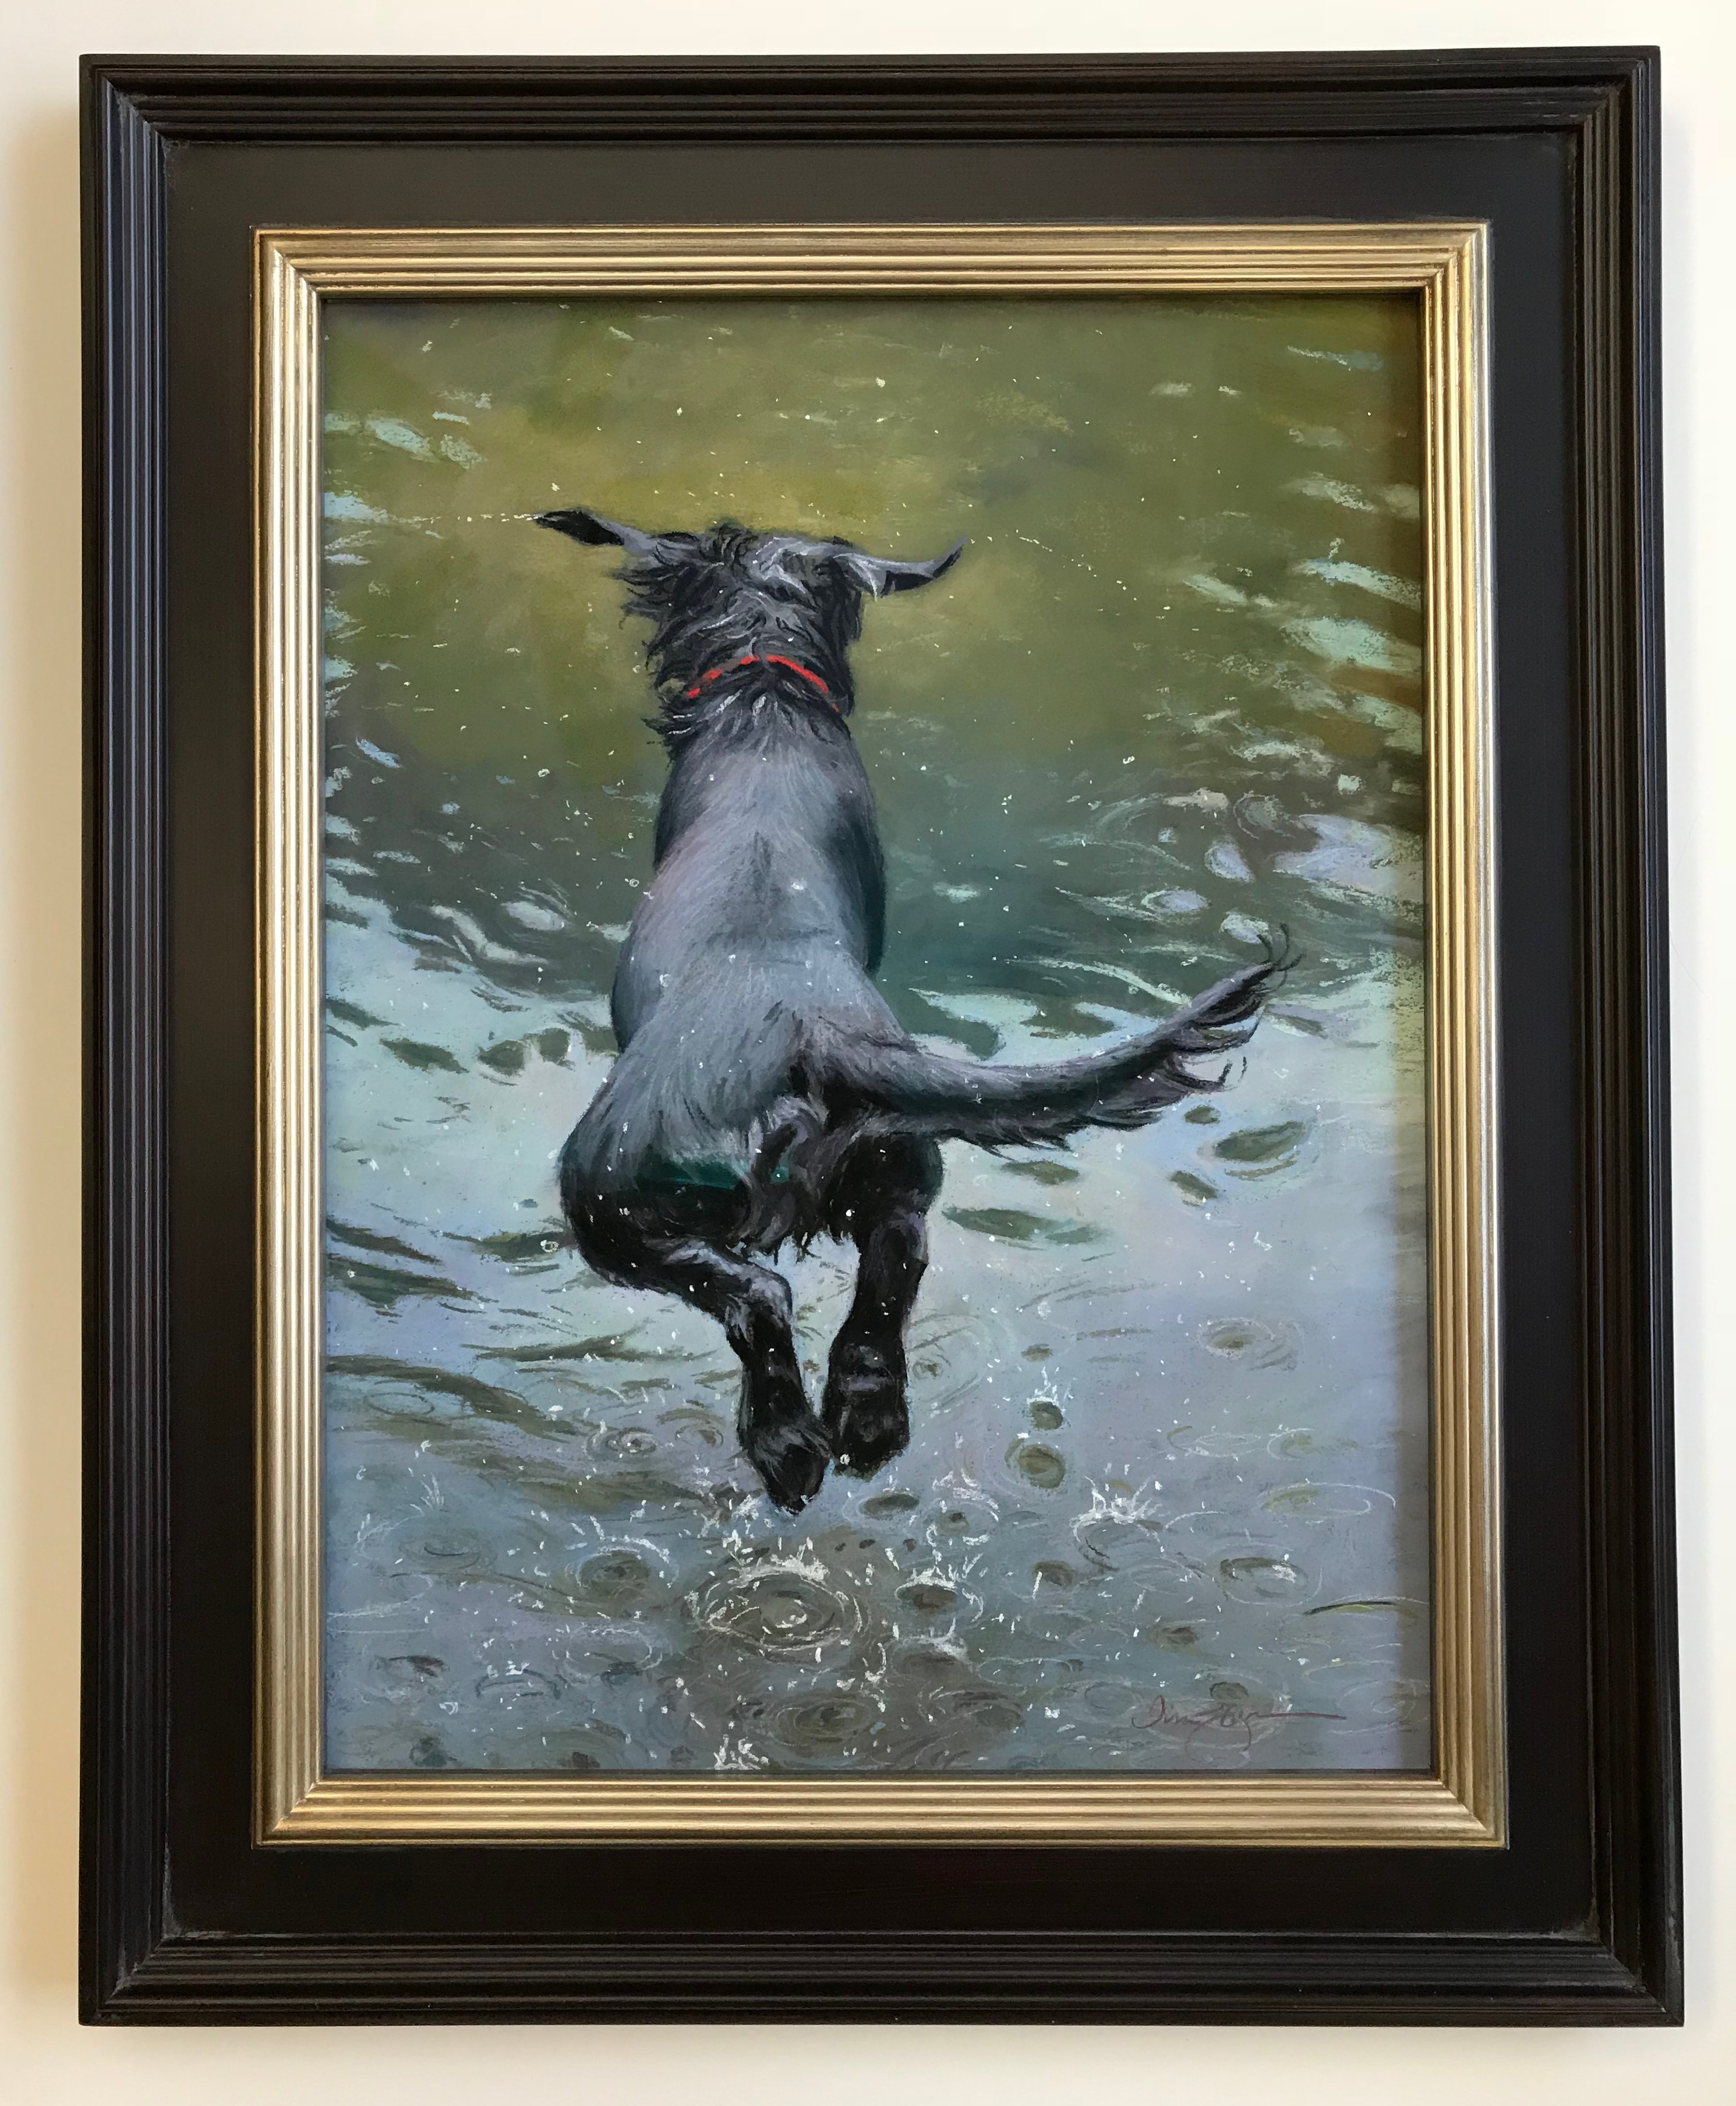 Fearless Lisa Gleim 22 X 16 29 X 23 Framed Inches Pastels On Pastel Board Framed In Black Silver Frame With Museum Glass Do Painting Dog Paintings Art